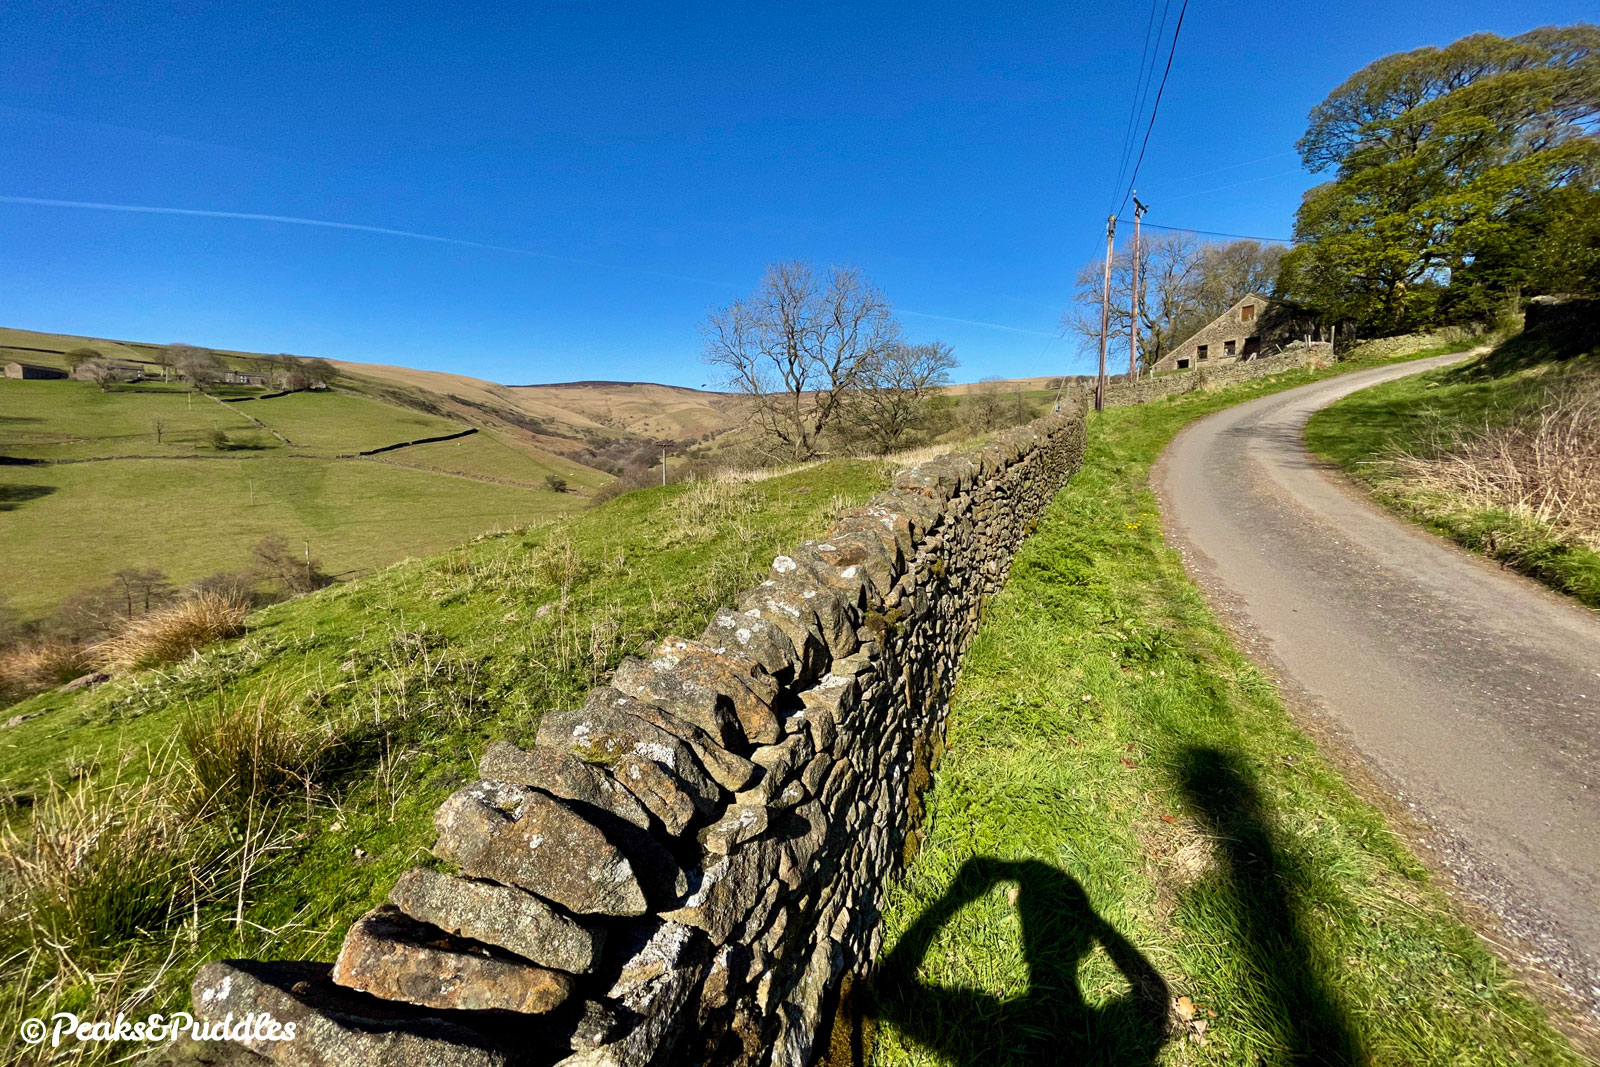 Hitting the deep Roych Clough, the road gives up and curves sharply back around up to Malcoff, leaving the windswept, isolated landscape beyond to itself. The Hope Valley lane disappears into Cowburn Tunnel below here, reemerging in the Vale of Edale.